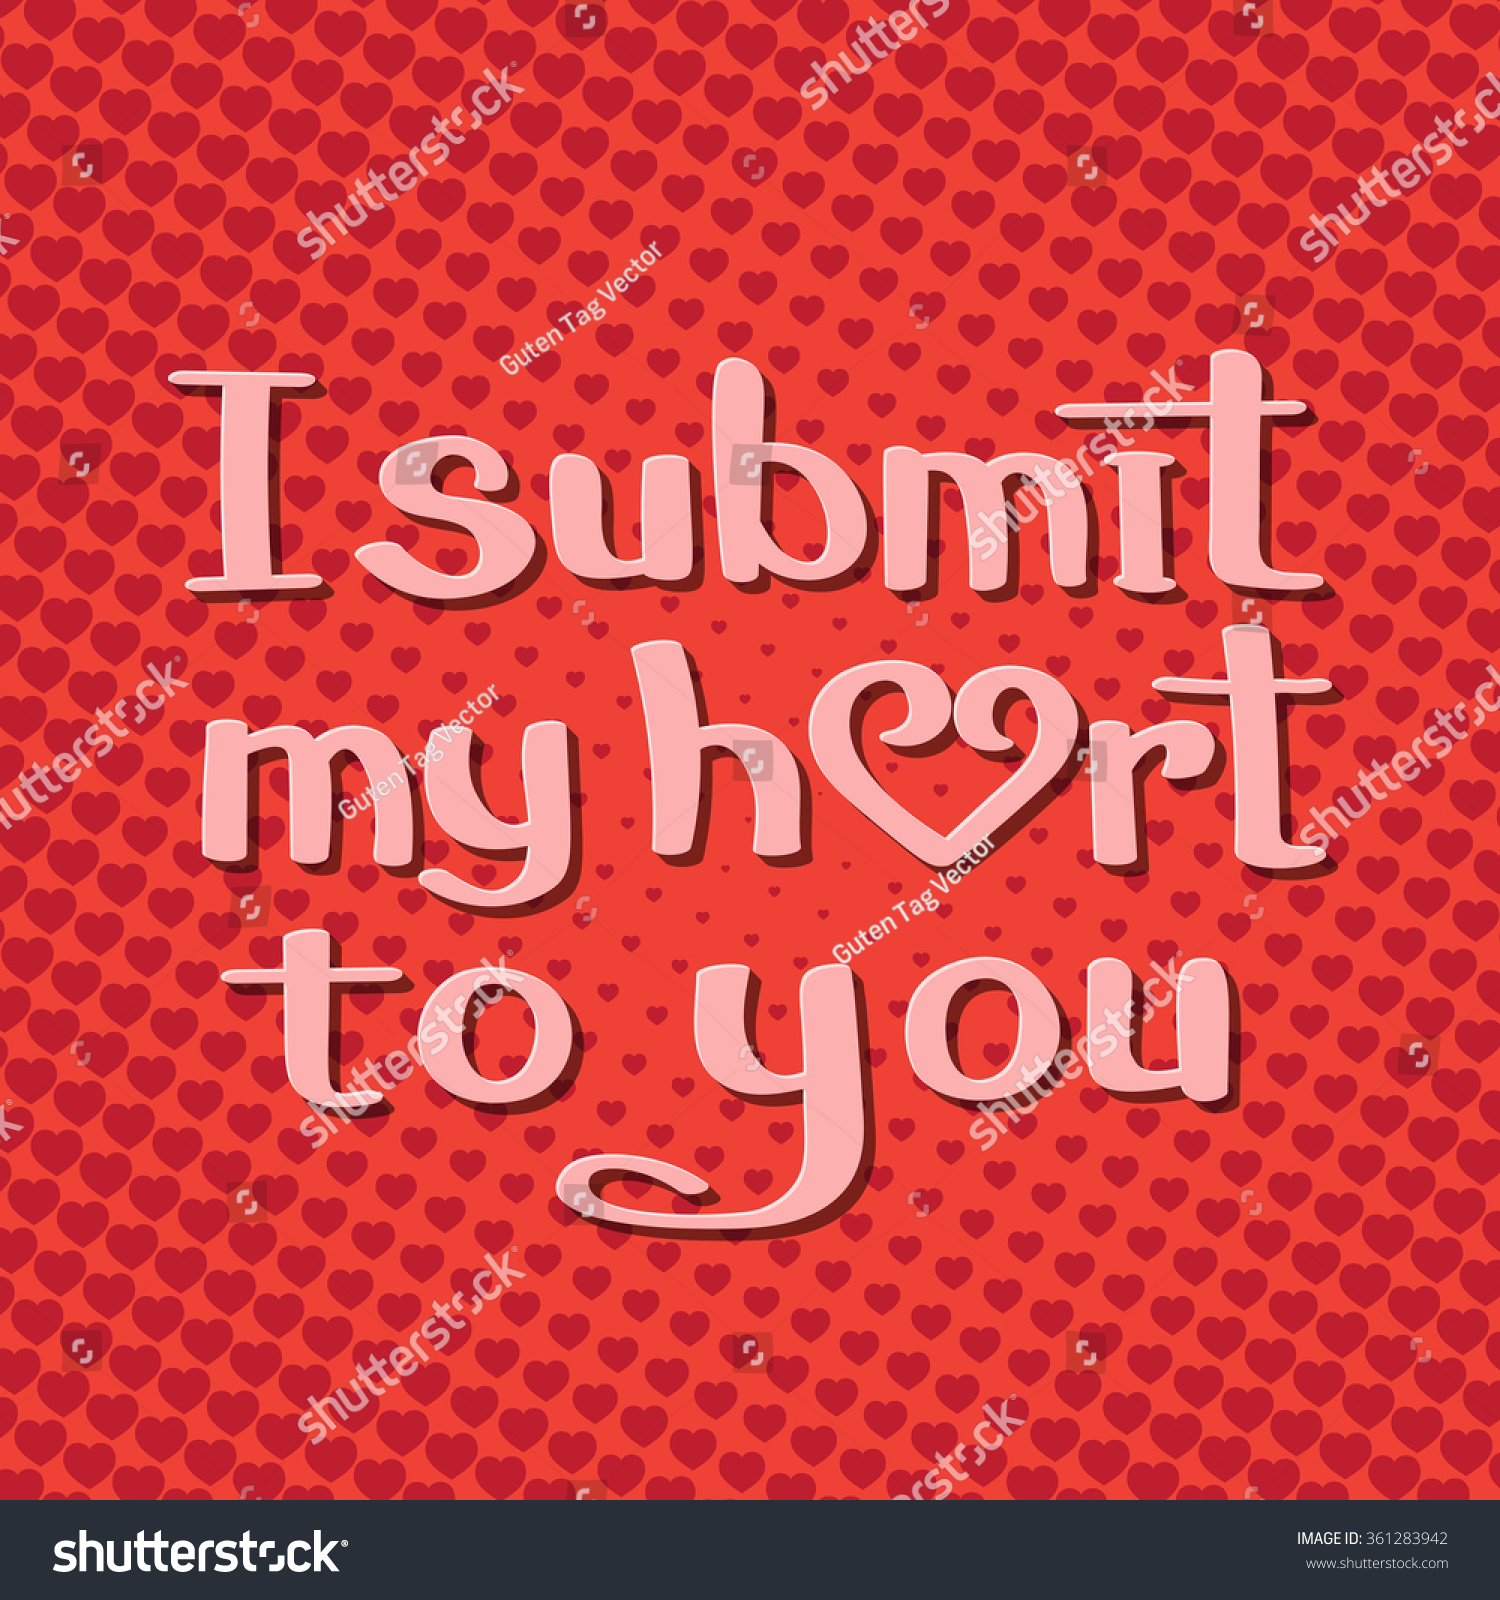 Submit my heart you lettering on stock vector royalty free i submit my heart to you lettering on background with hearts in pop art style m4hsunfo